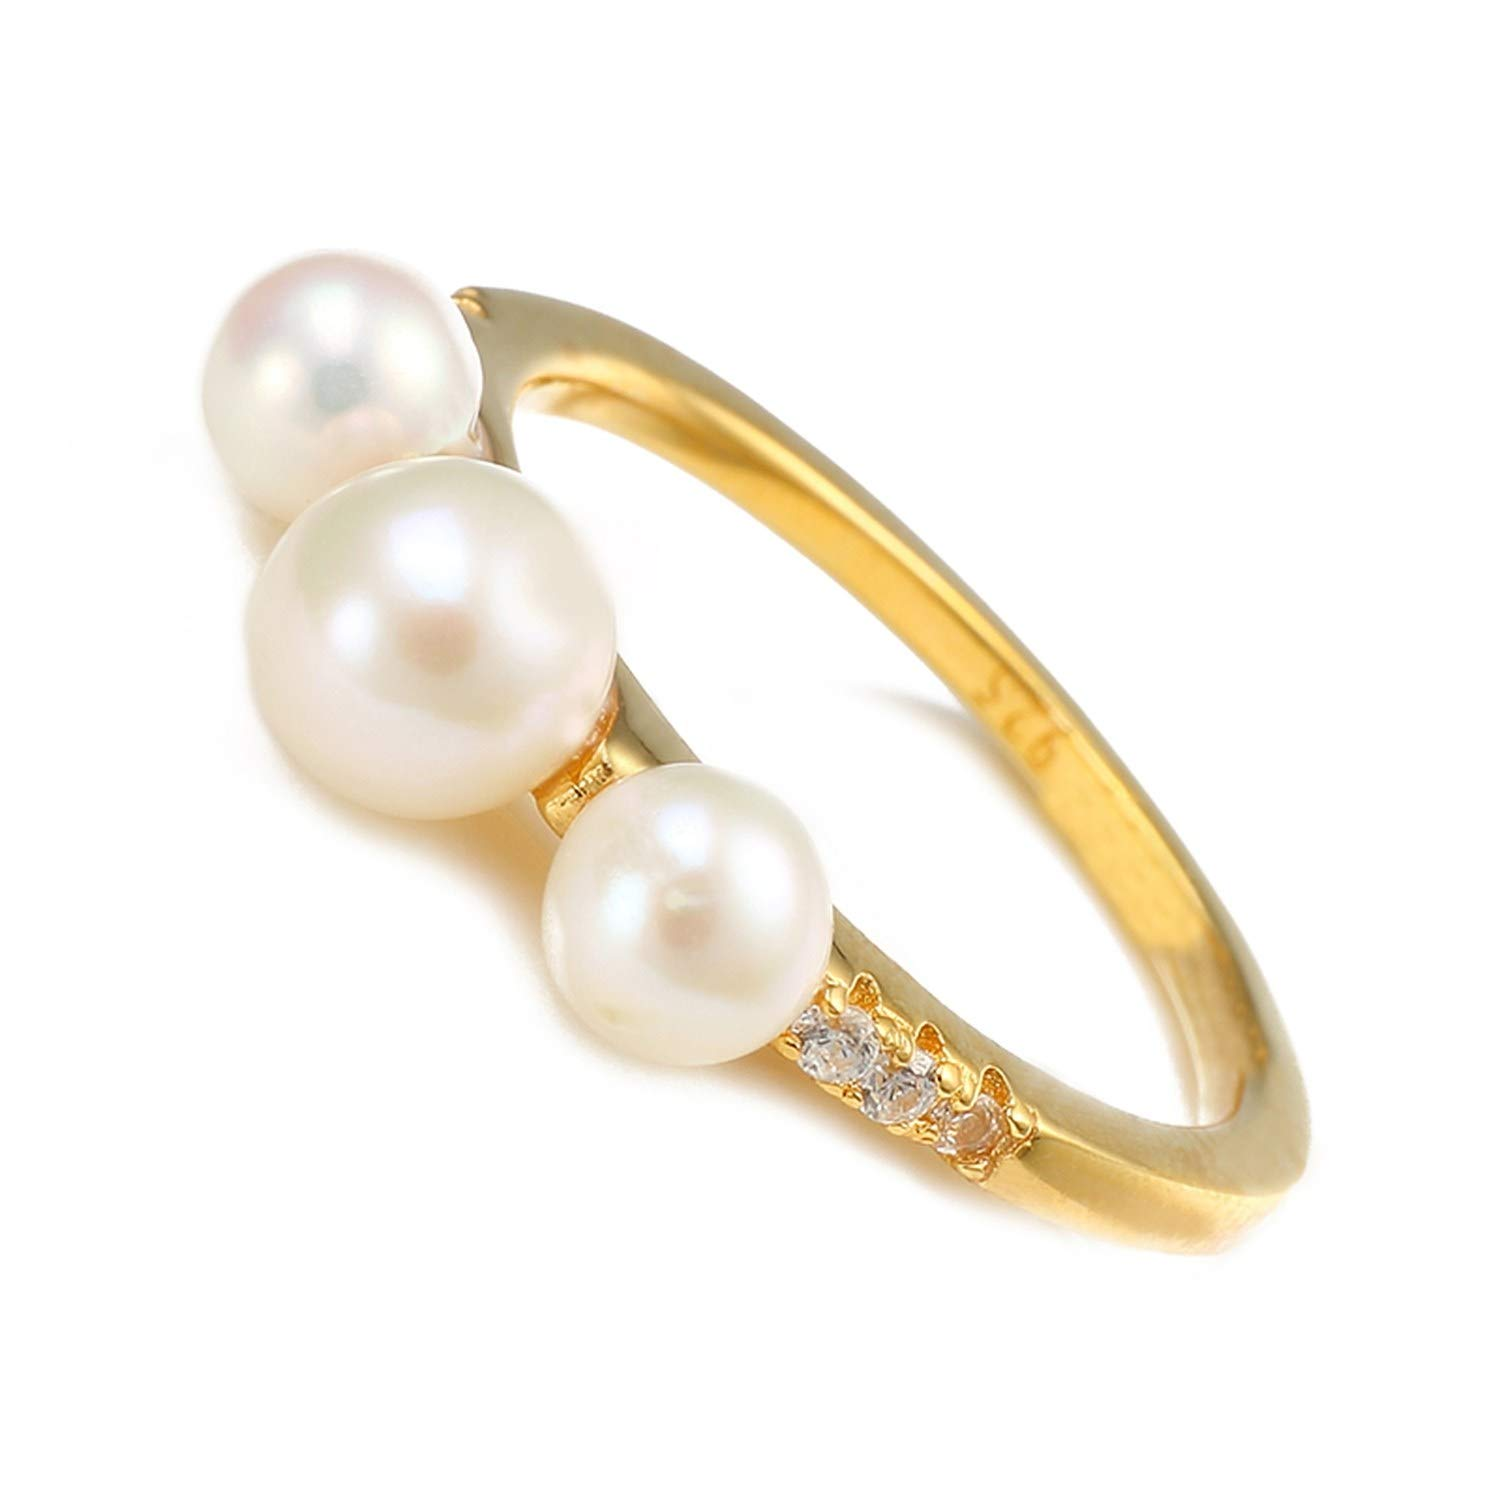 salmoph cadia 100/% 925 Sterling Silver Rings Women Fresh Water Pearl Ring Cubic Zirconia Jewelry Gold Color,5,White,Gold